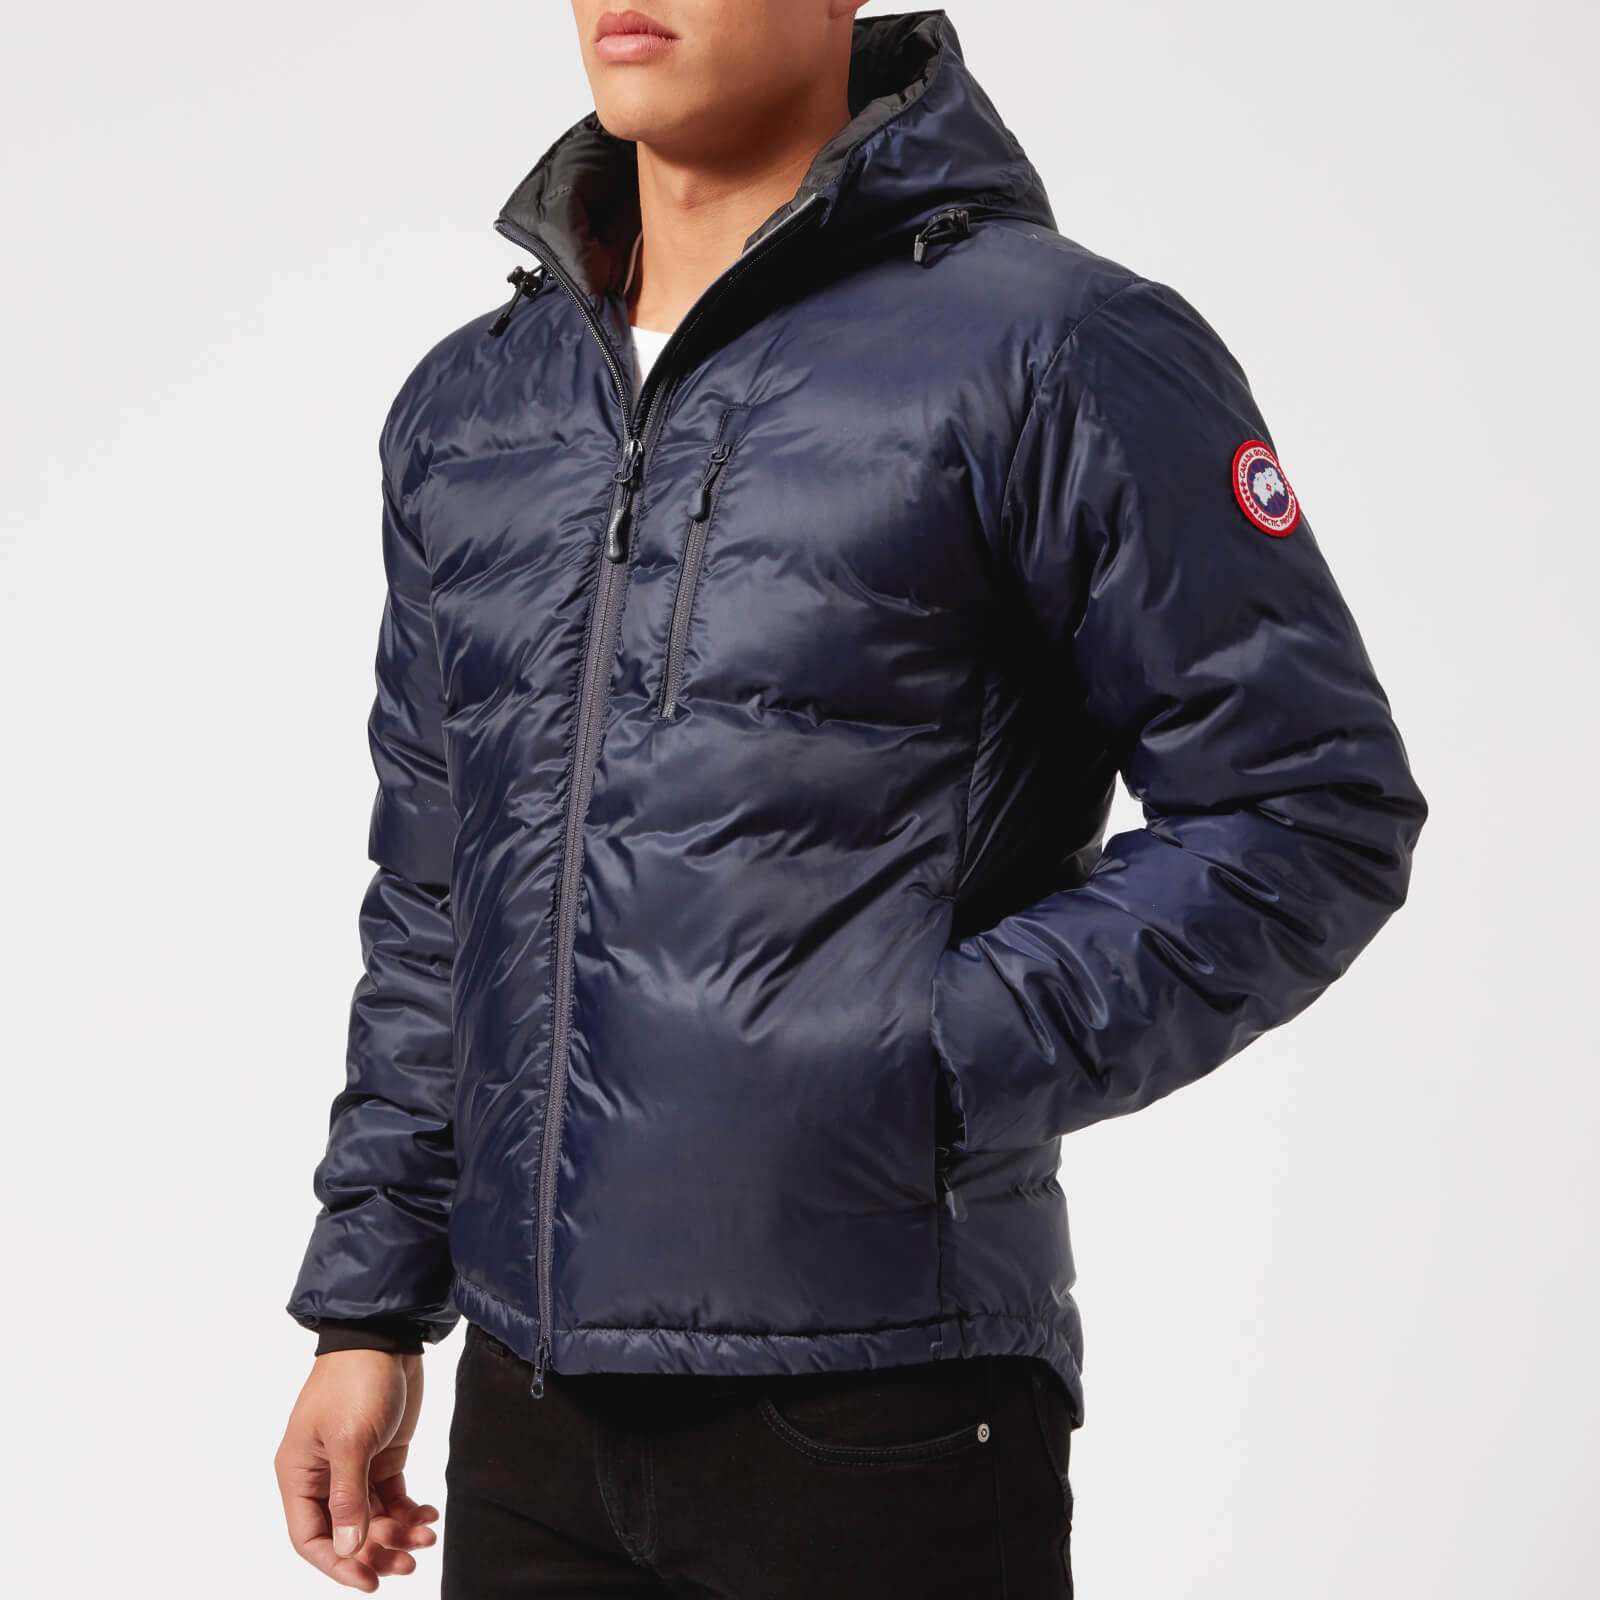 Canada Goose Men's Lodge Hooded Jacket Black Free UK